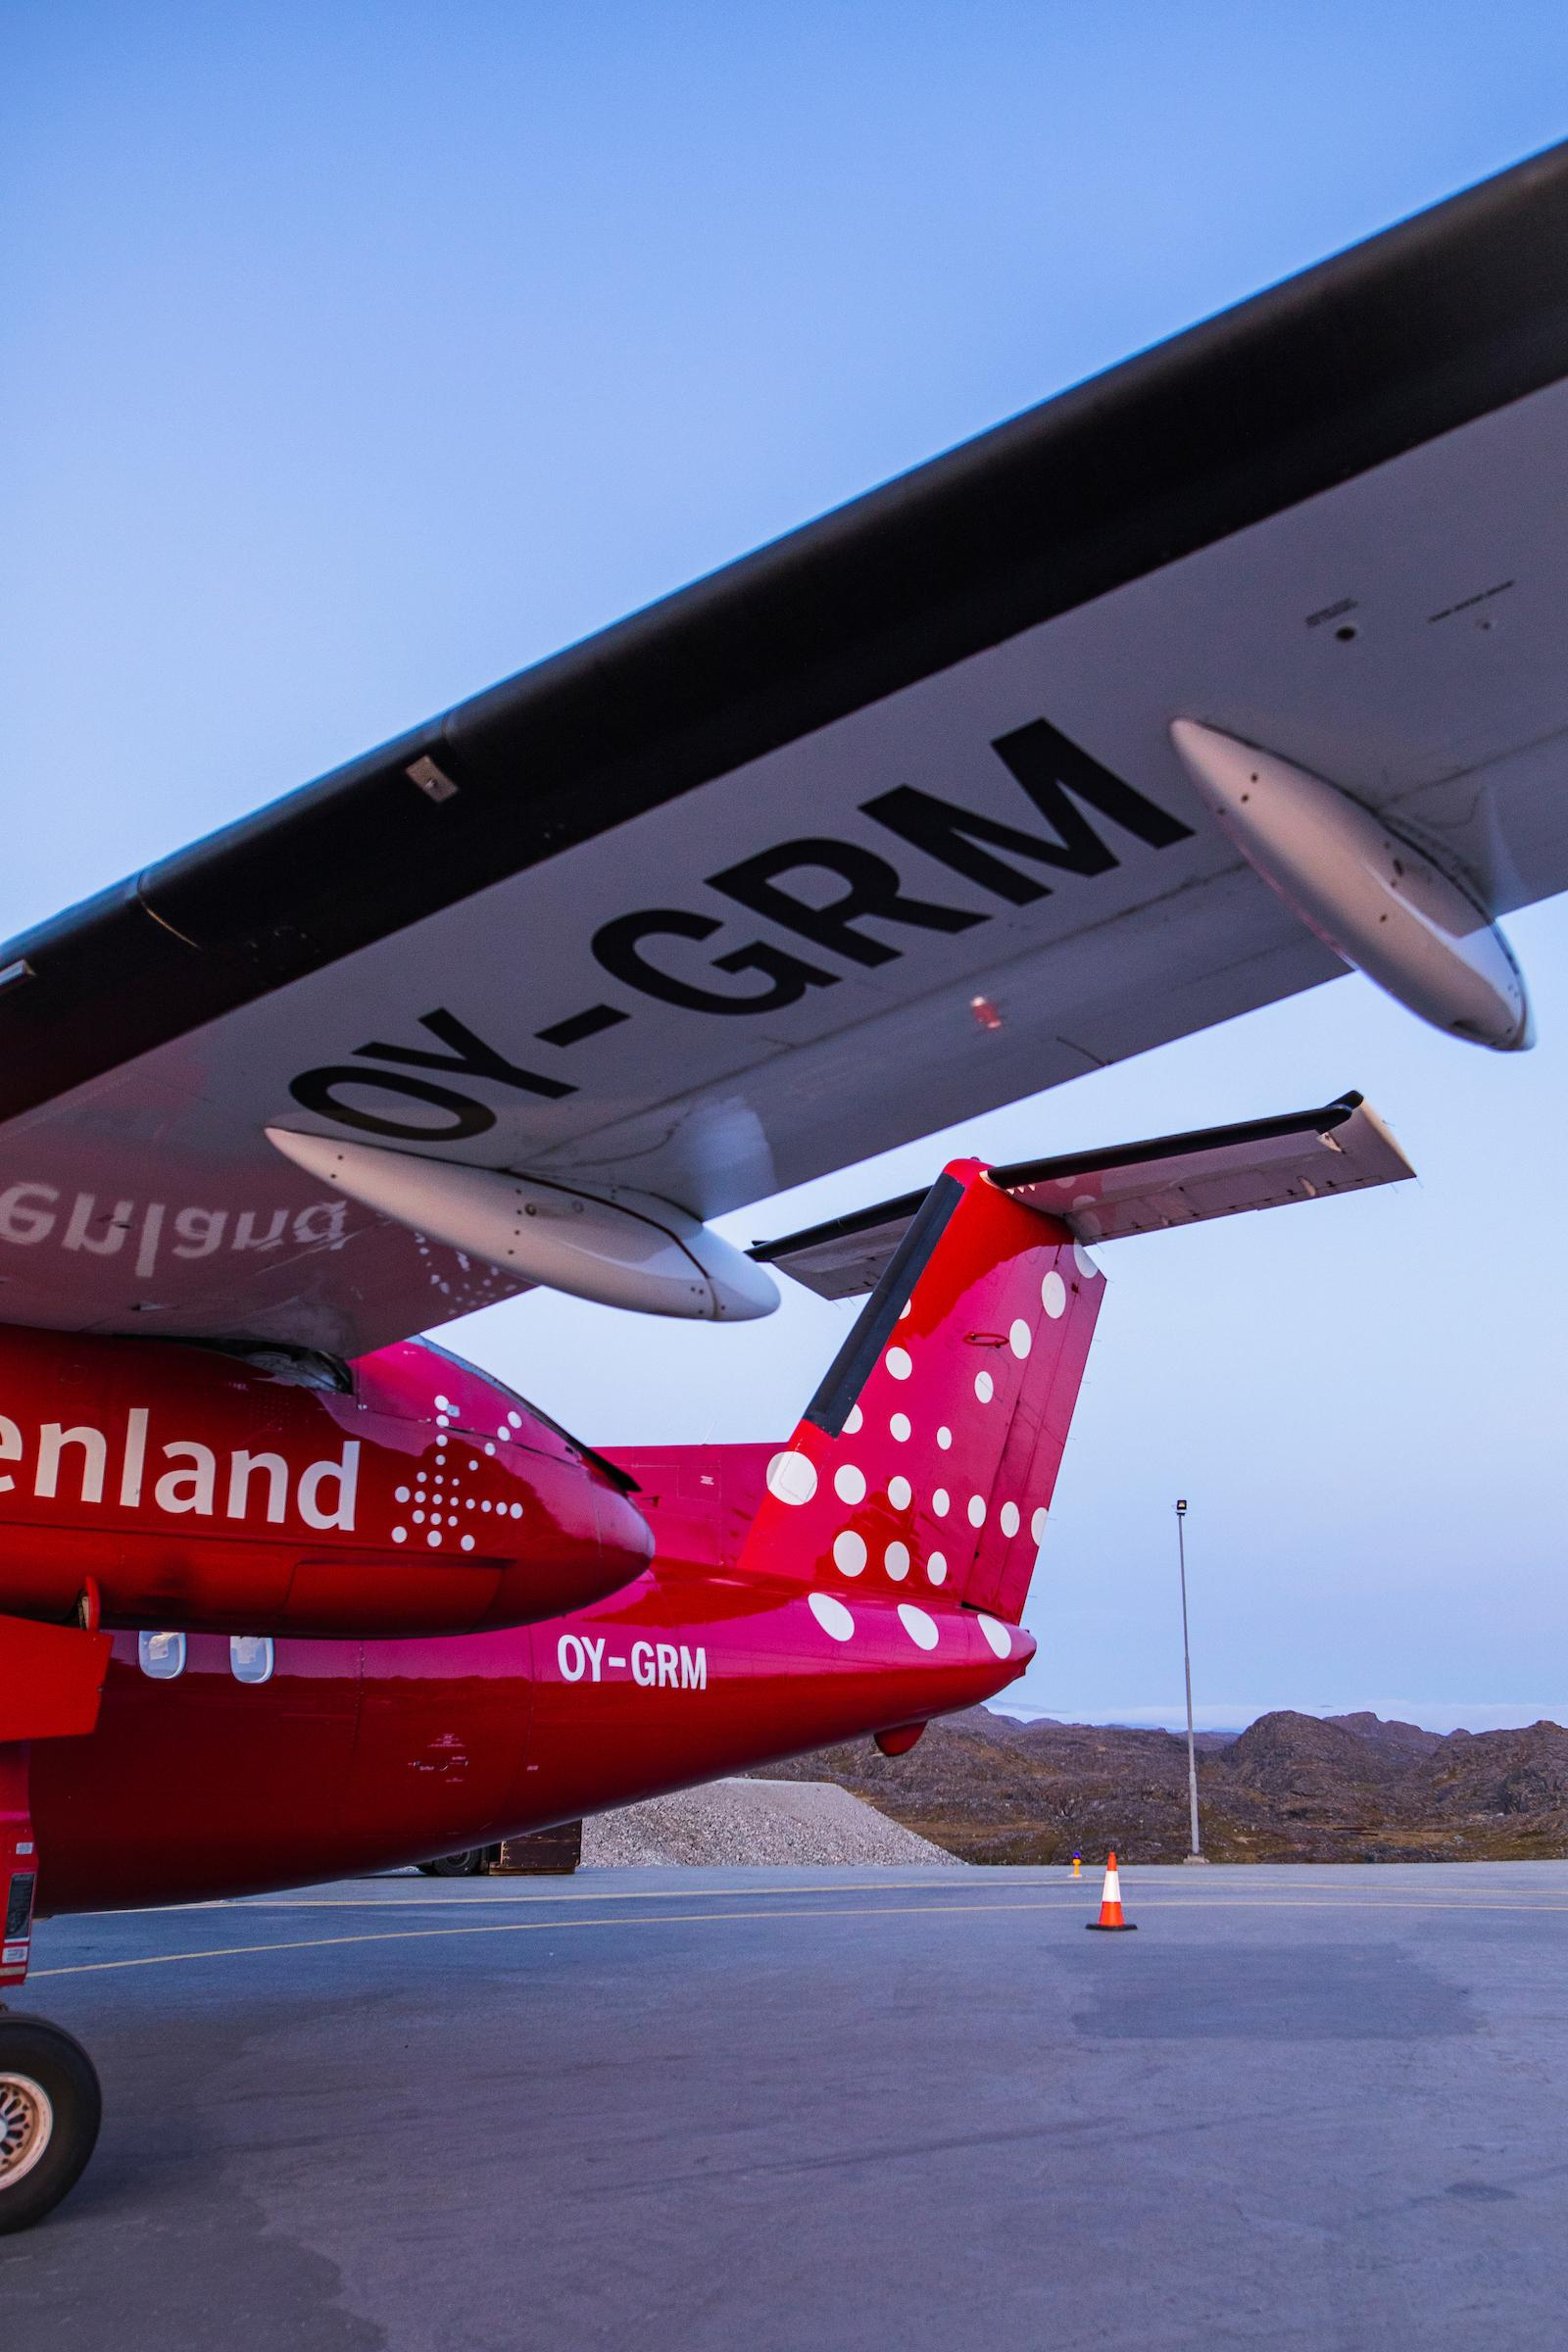 Airplane wing. Photo by Aningaaq R Carlsen - Visit Greenland